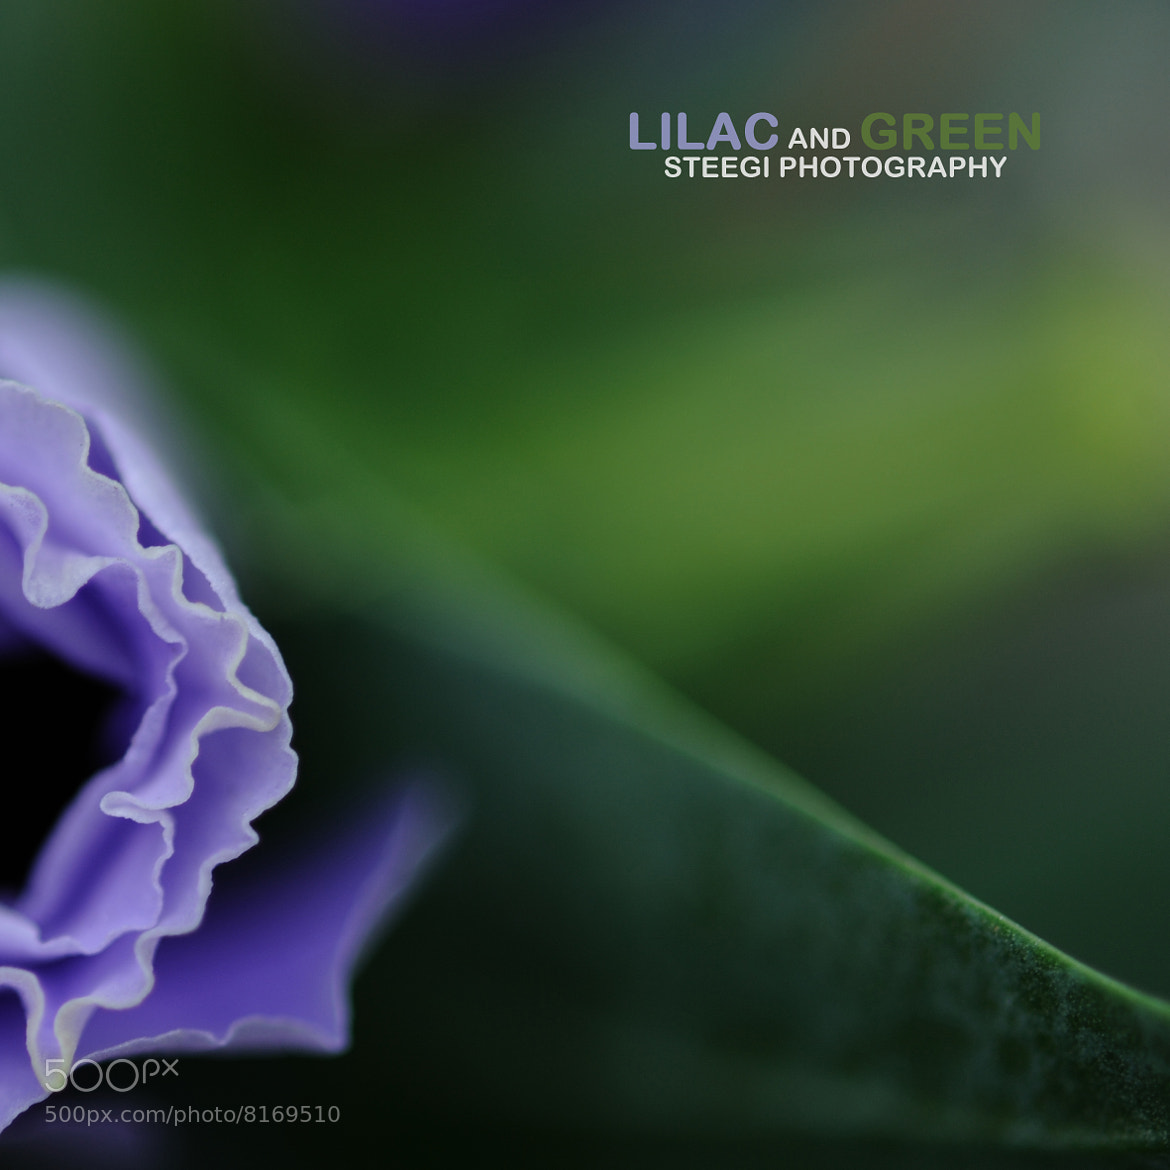 Photograph Lilac and Green by Andreas Steegmann on 500px